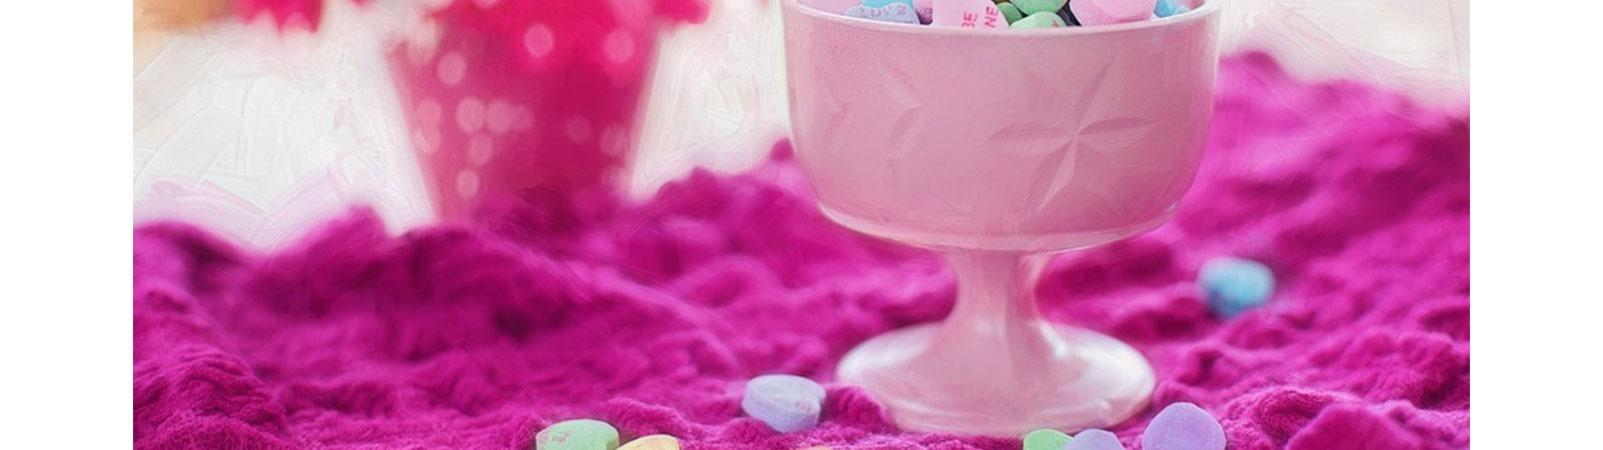 Diabetes And Candy, Oh My! A Diabetics Guide To Sweets On Valentines Day